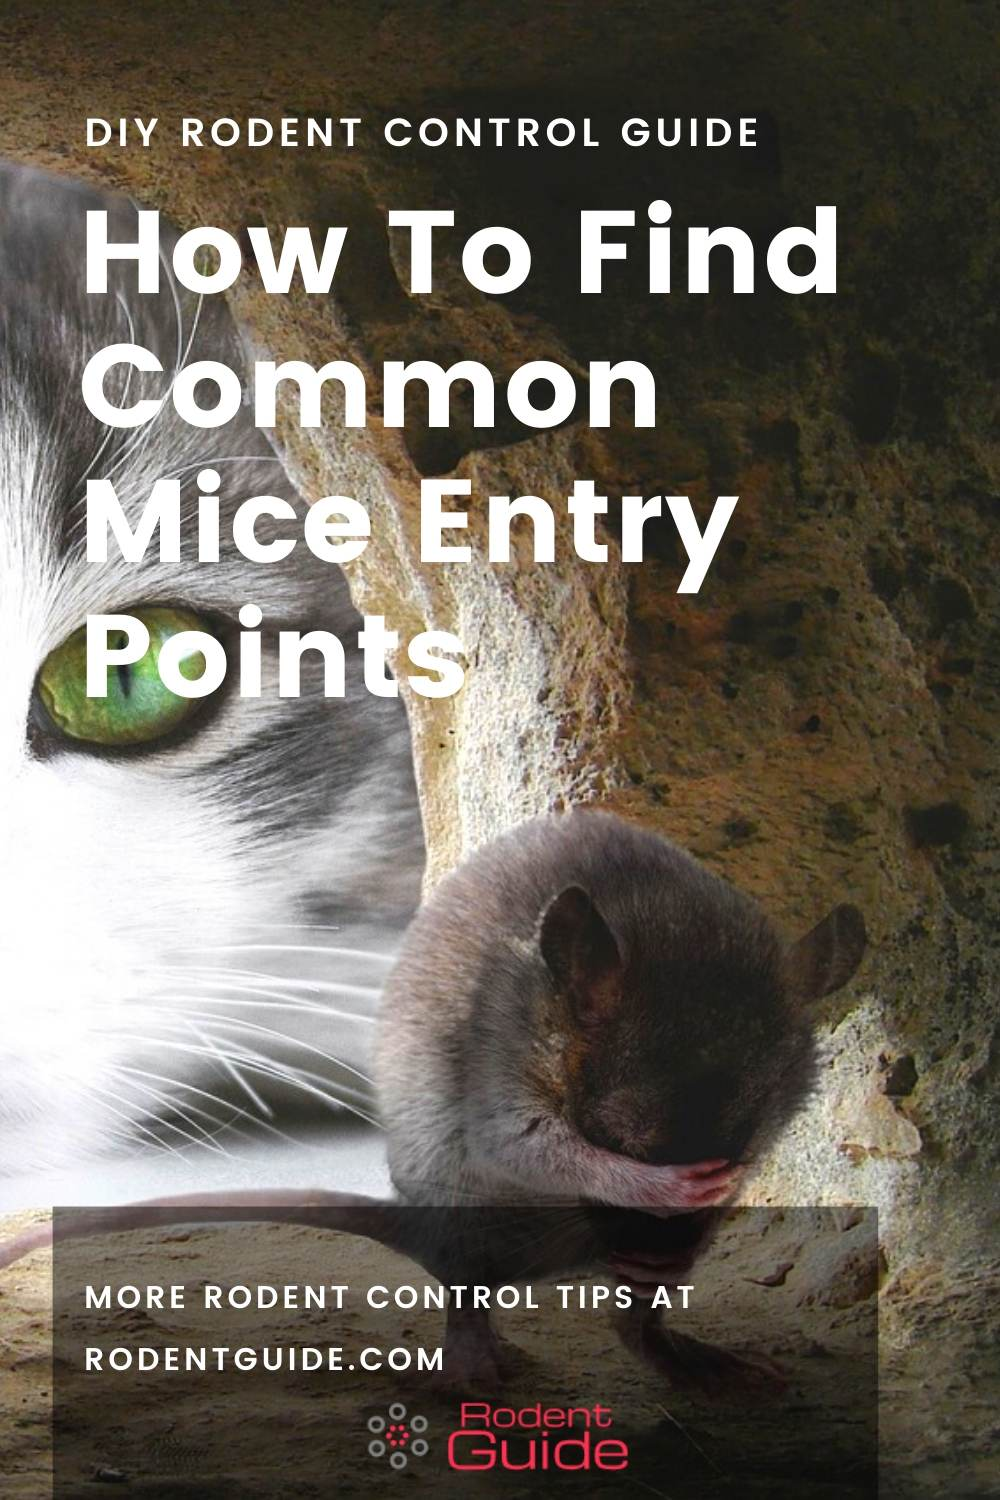 How To Find Common Mice Entry Points